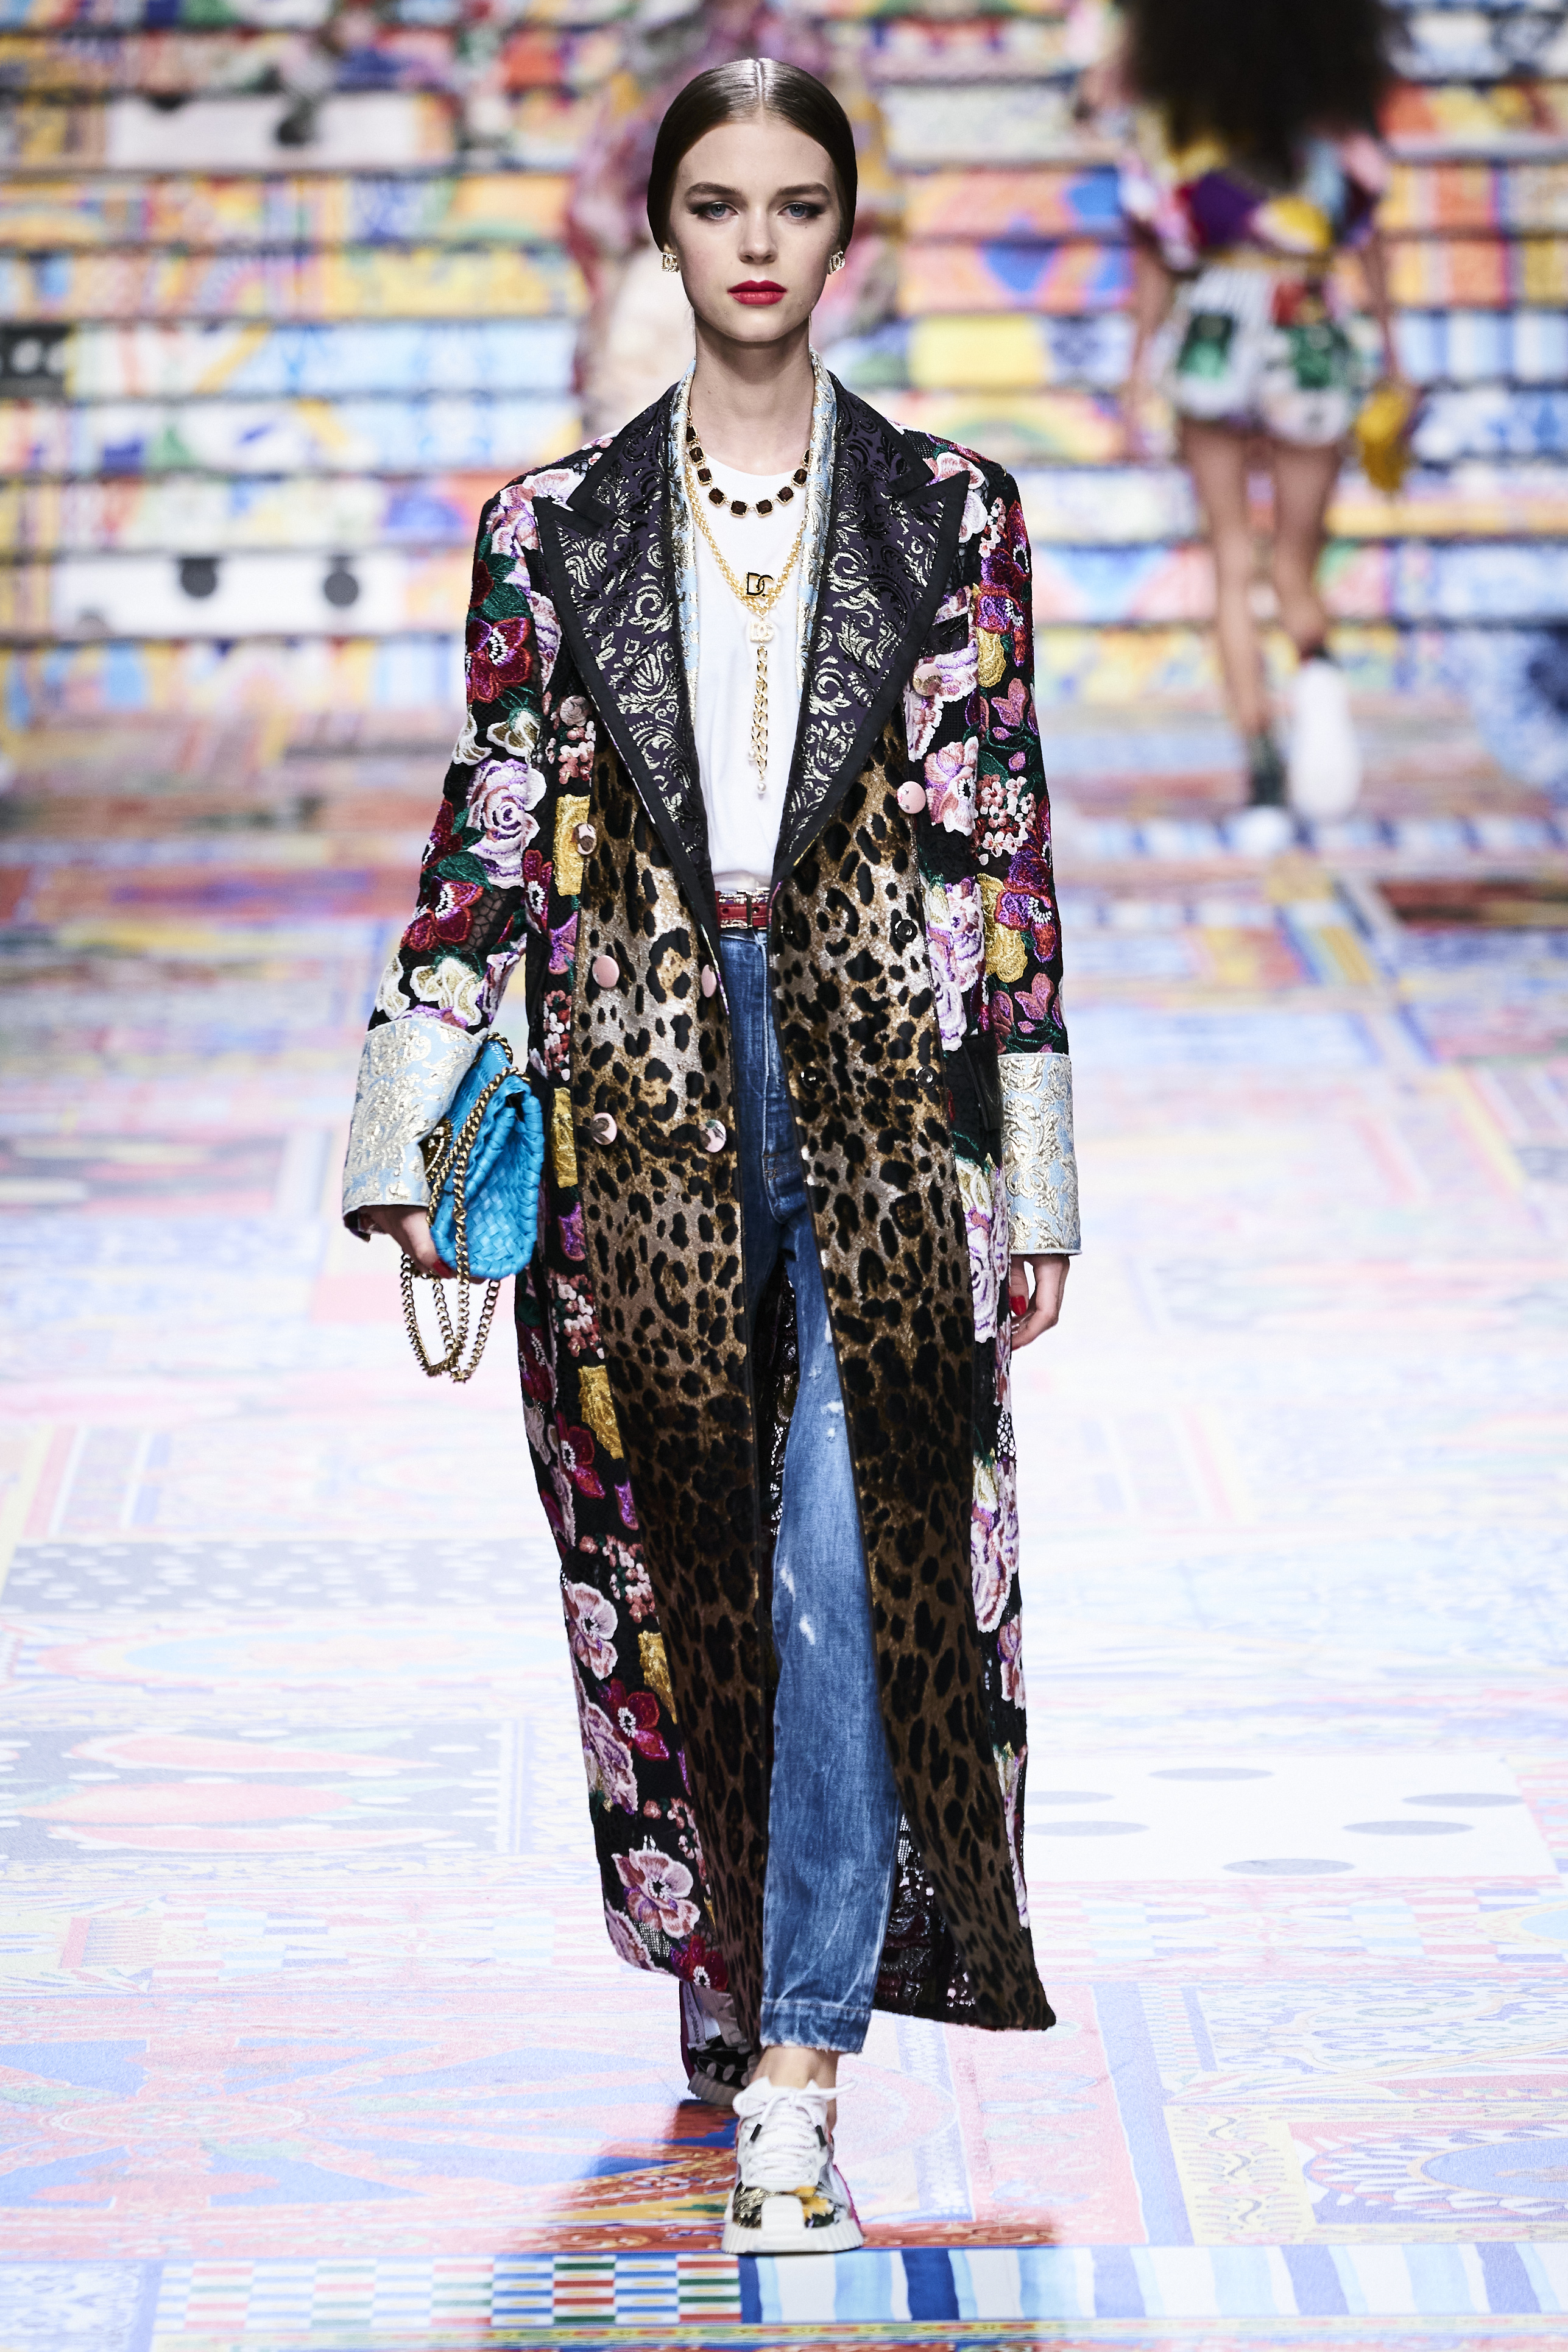 Prints galore: Dolce & Gabbana and Versace's Spring/Summer '21 collection (фото 5)